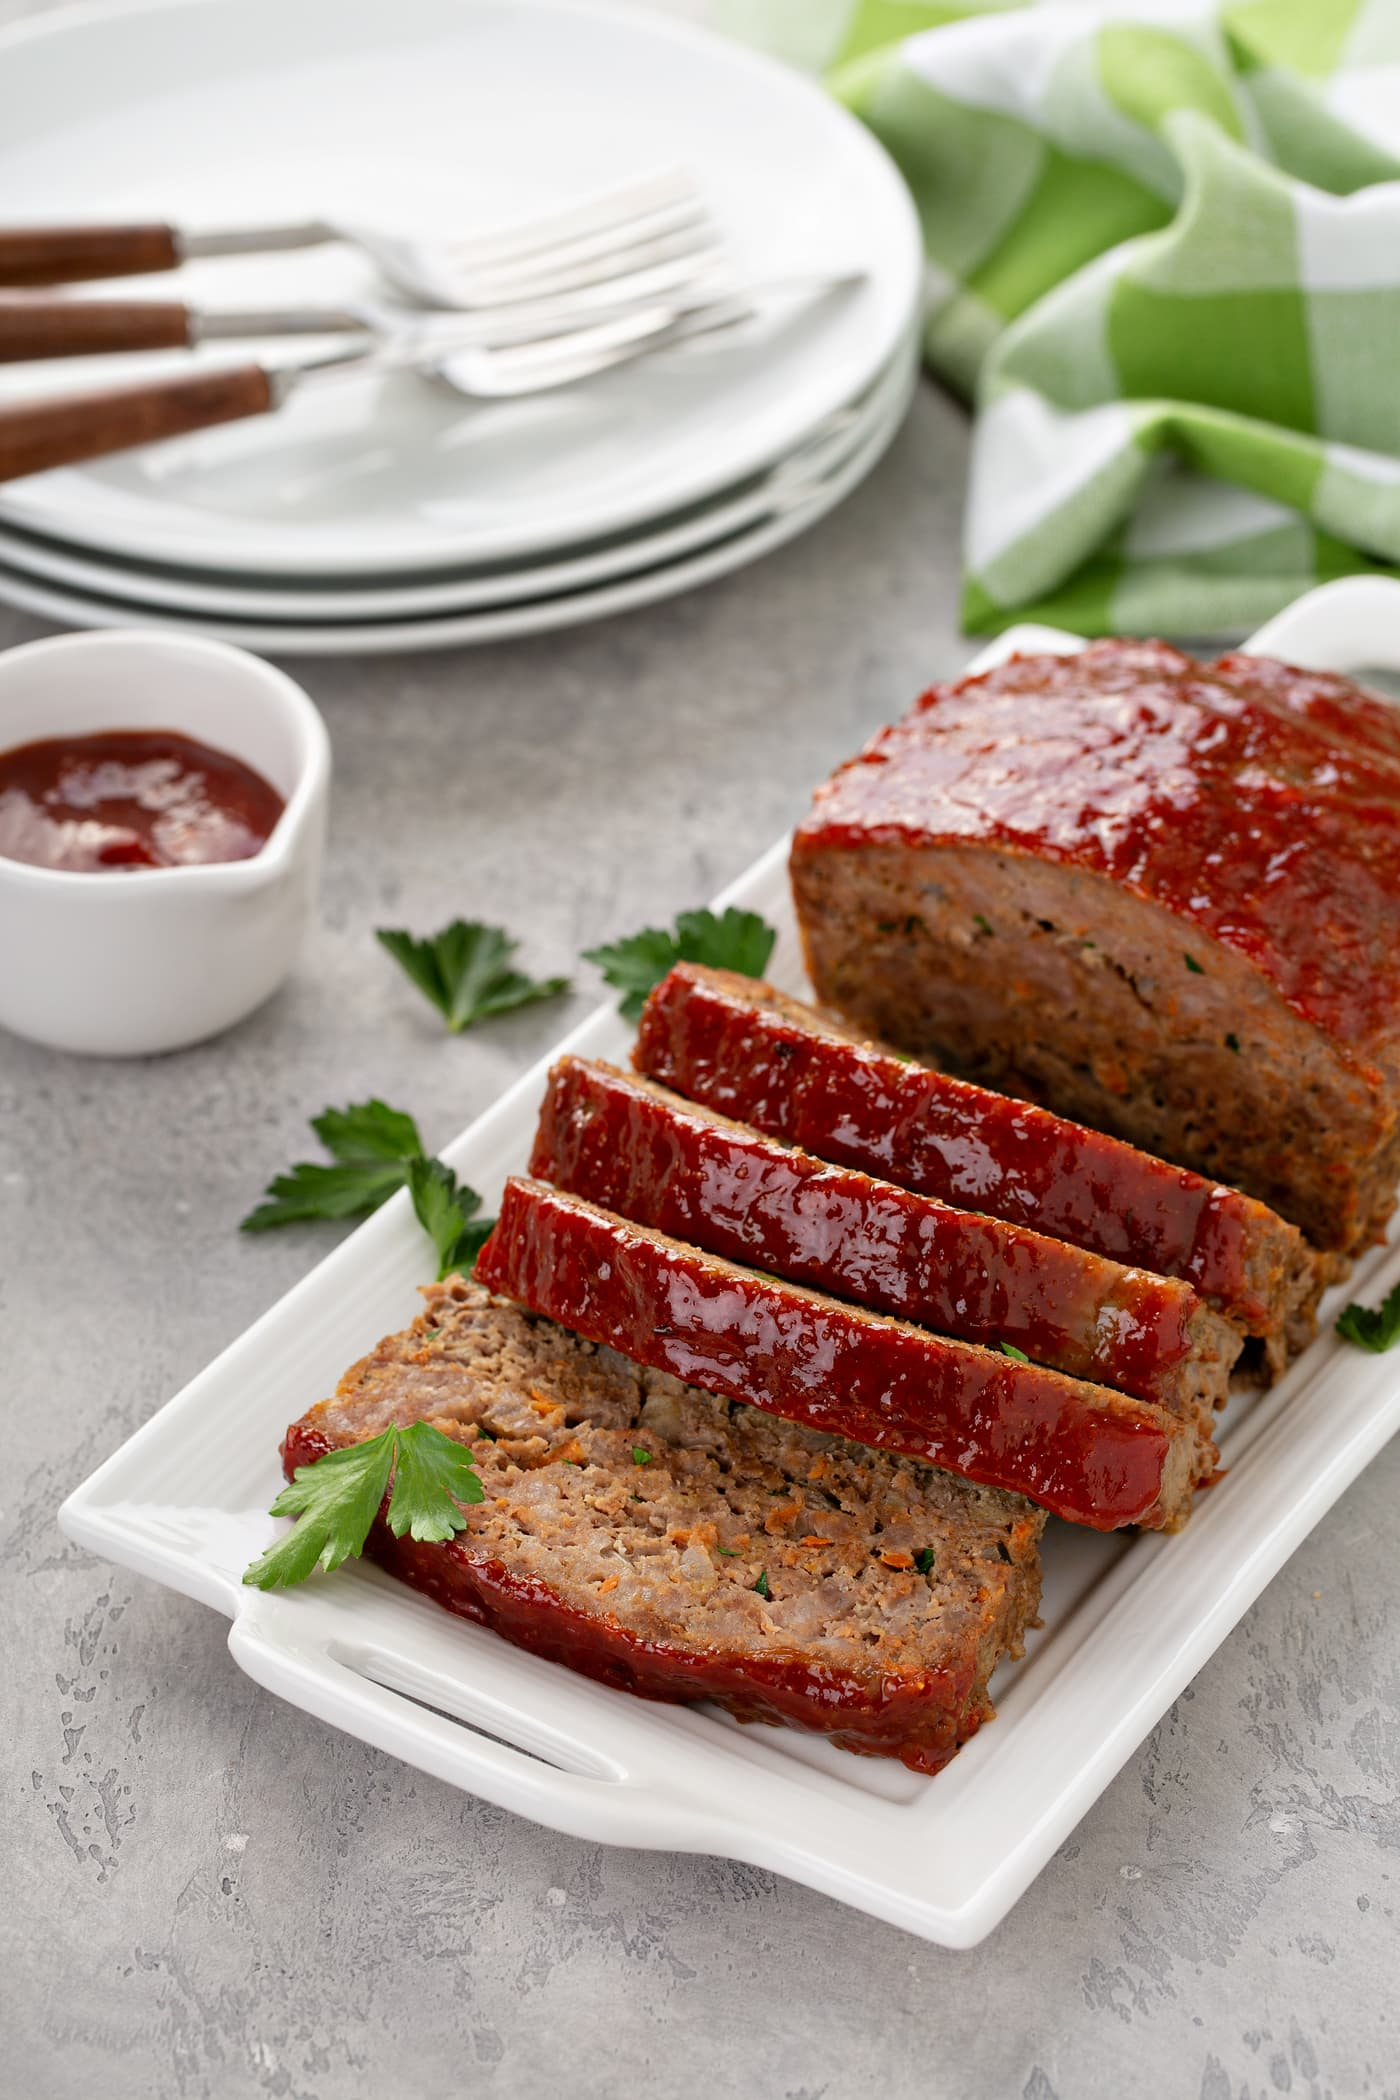 A tray containing a partially sliced meatloaf. There are parsley leaves sprinkled around the meatloaf and a container of glaze beside the tray. There is a stack of white dinner plates with forks on them in the background.